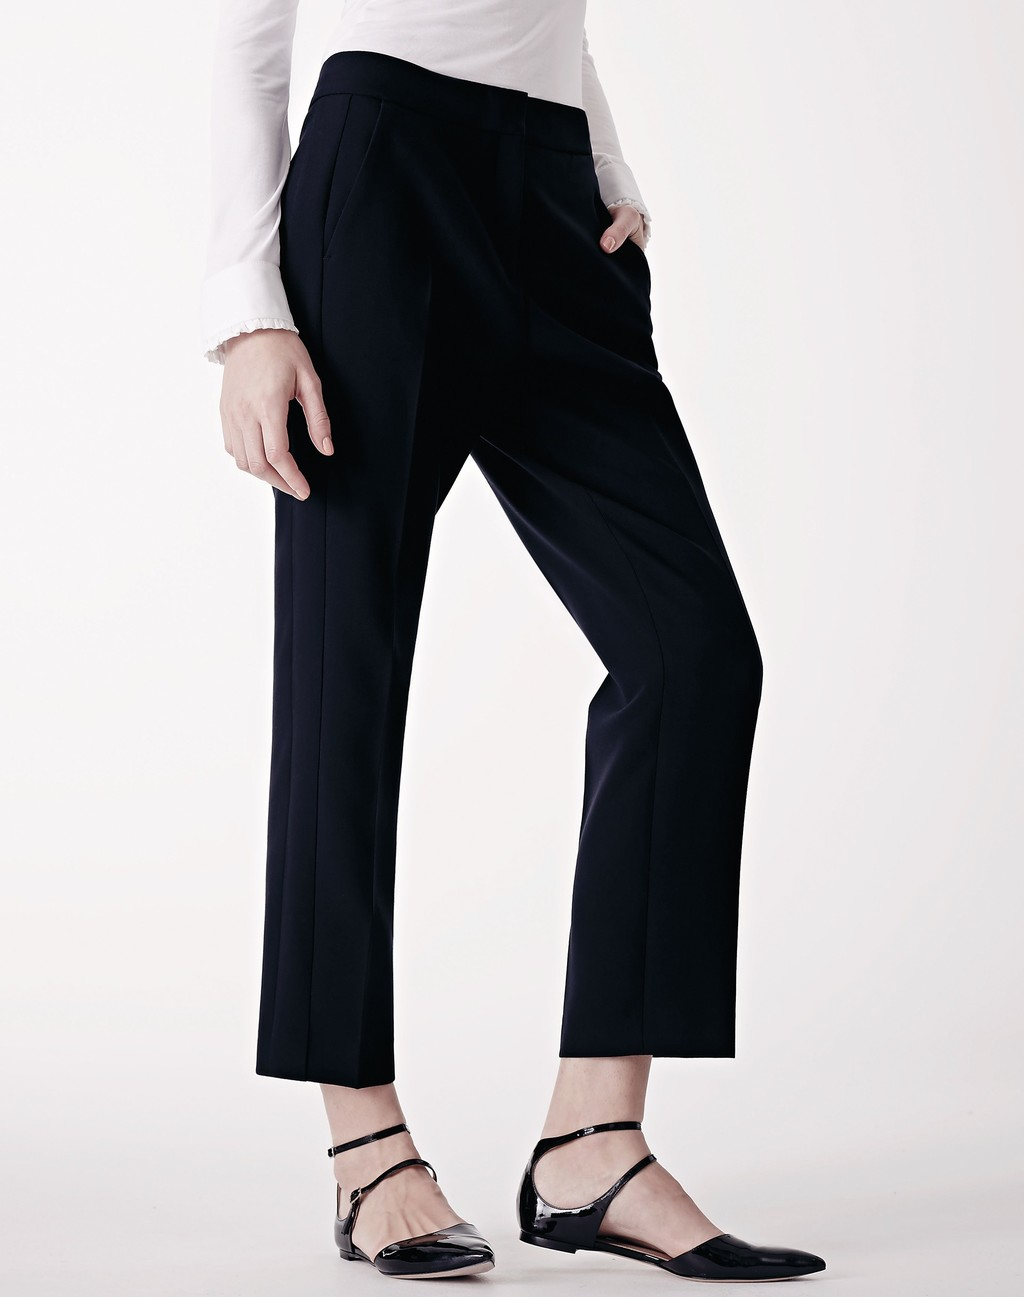 Slim Crop Trouser Navy - pattern: plain; waist: high rise; predominant colour: navy; length: calf length; fibres: cotton - stretch; hip detail: subtle/flattering hip detail; texture group: cotton feel fabrics; fit: slim leg; pattern type: fabric; style: standard; occasions: creative work; season: s/s 2016; wardrobe: basic